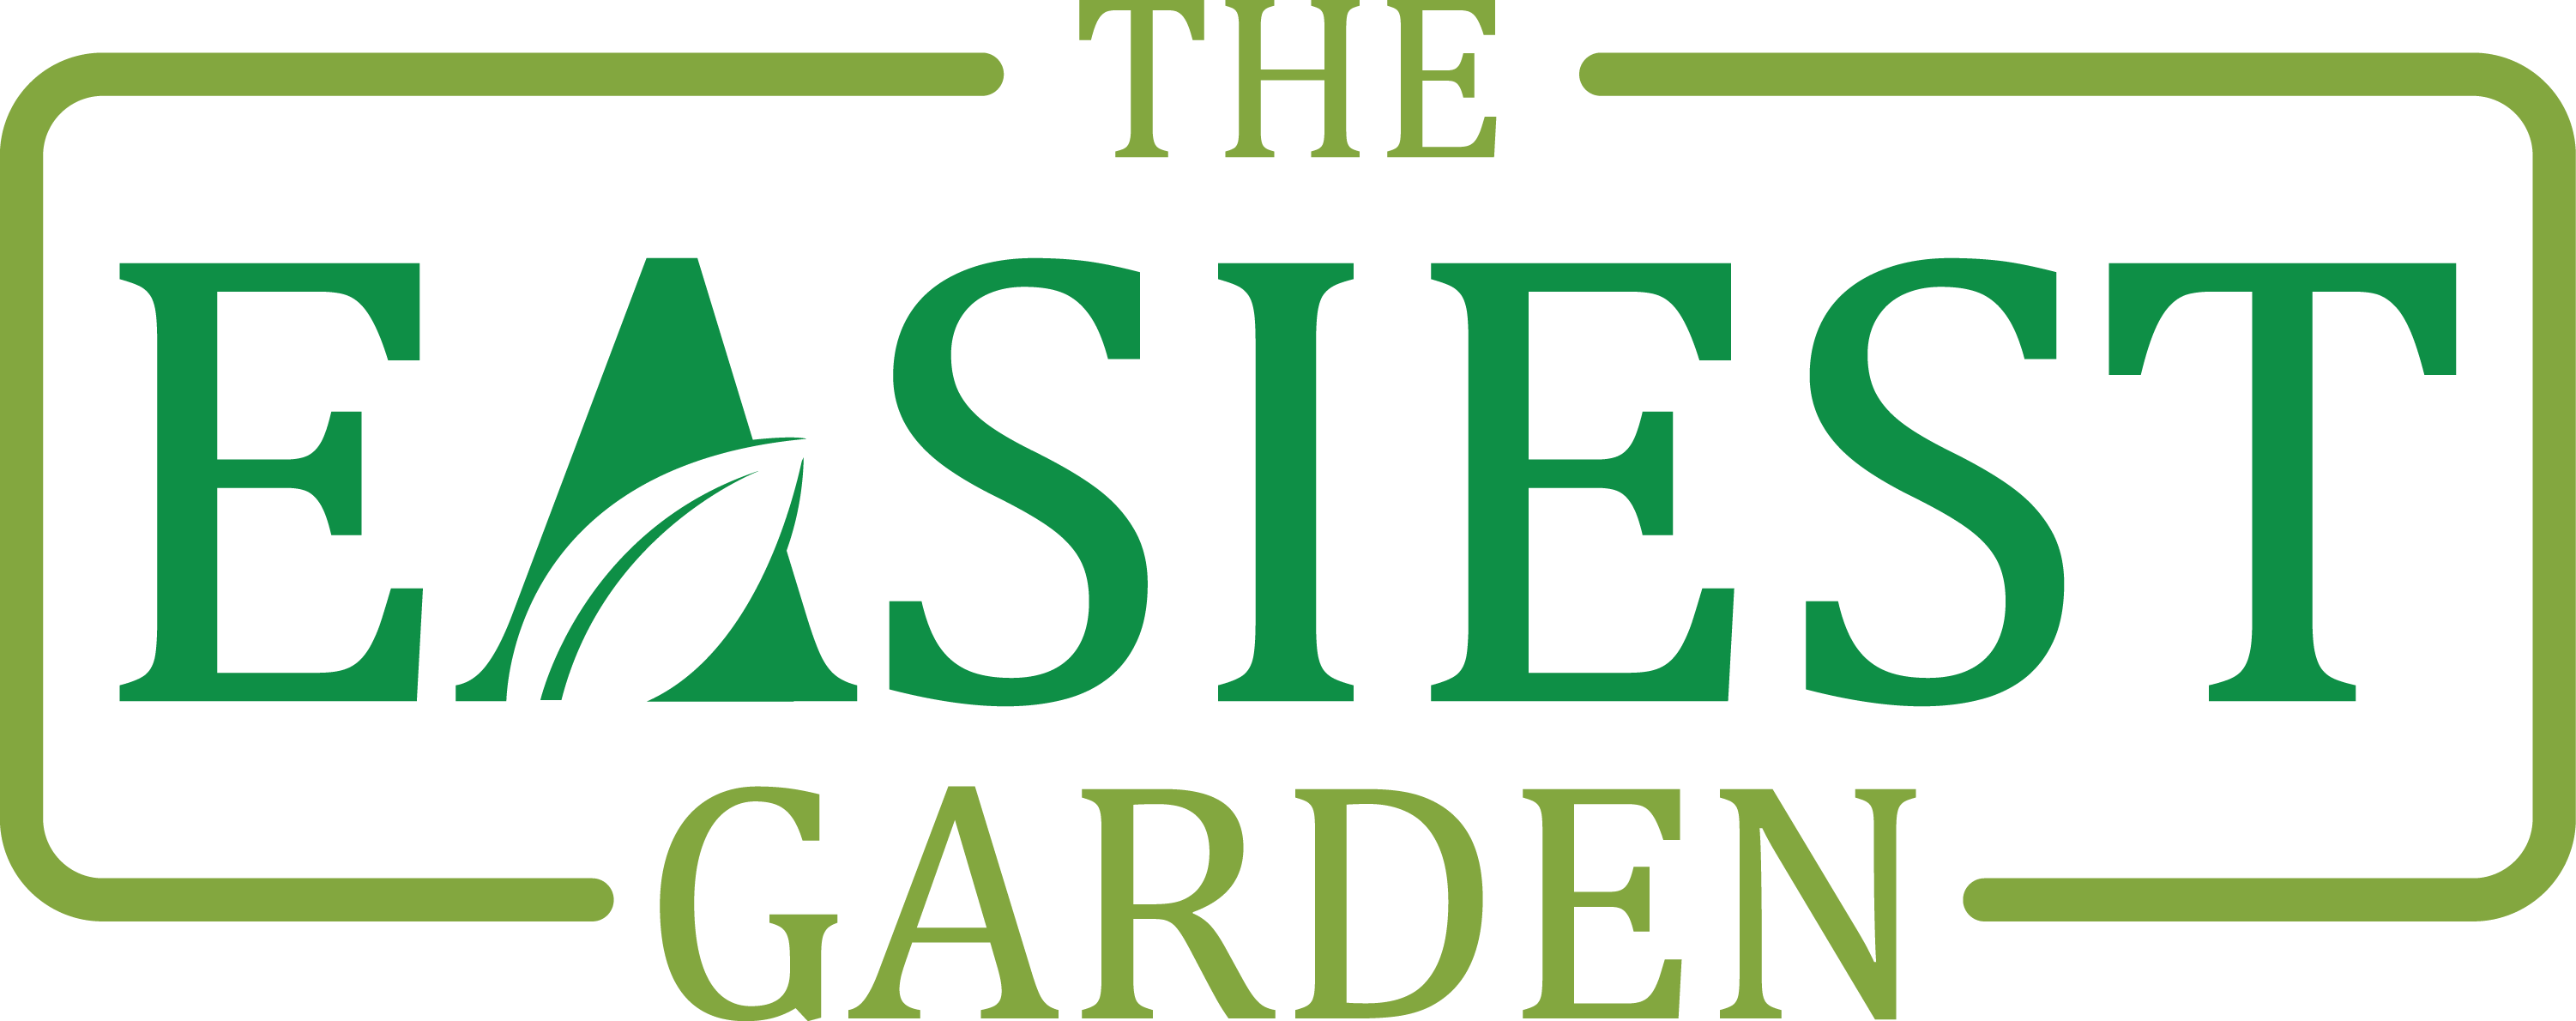 The Easiest Garden